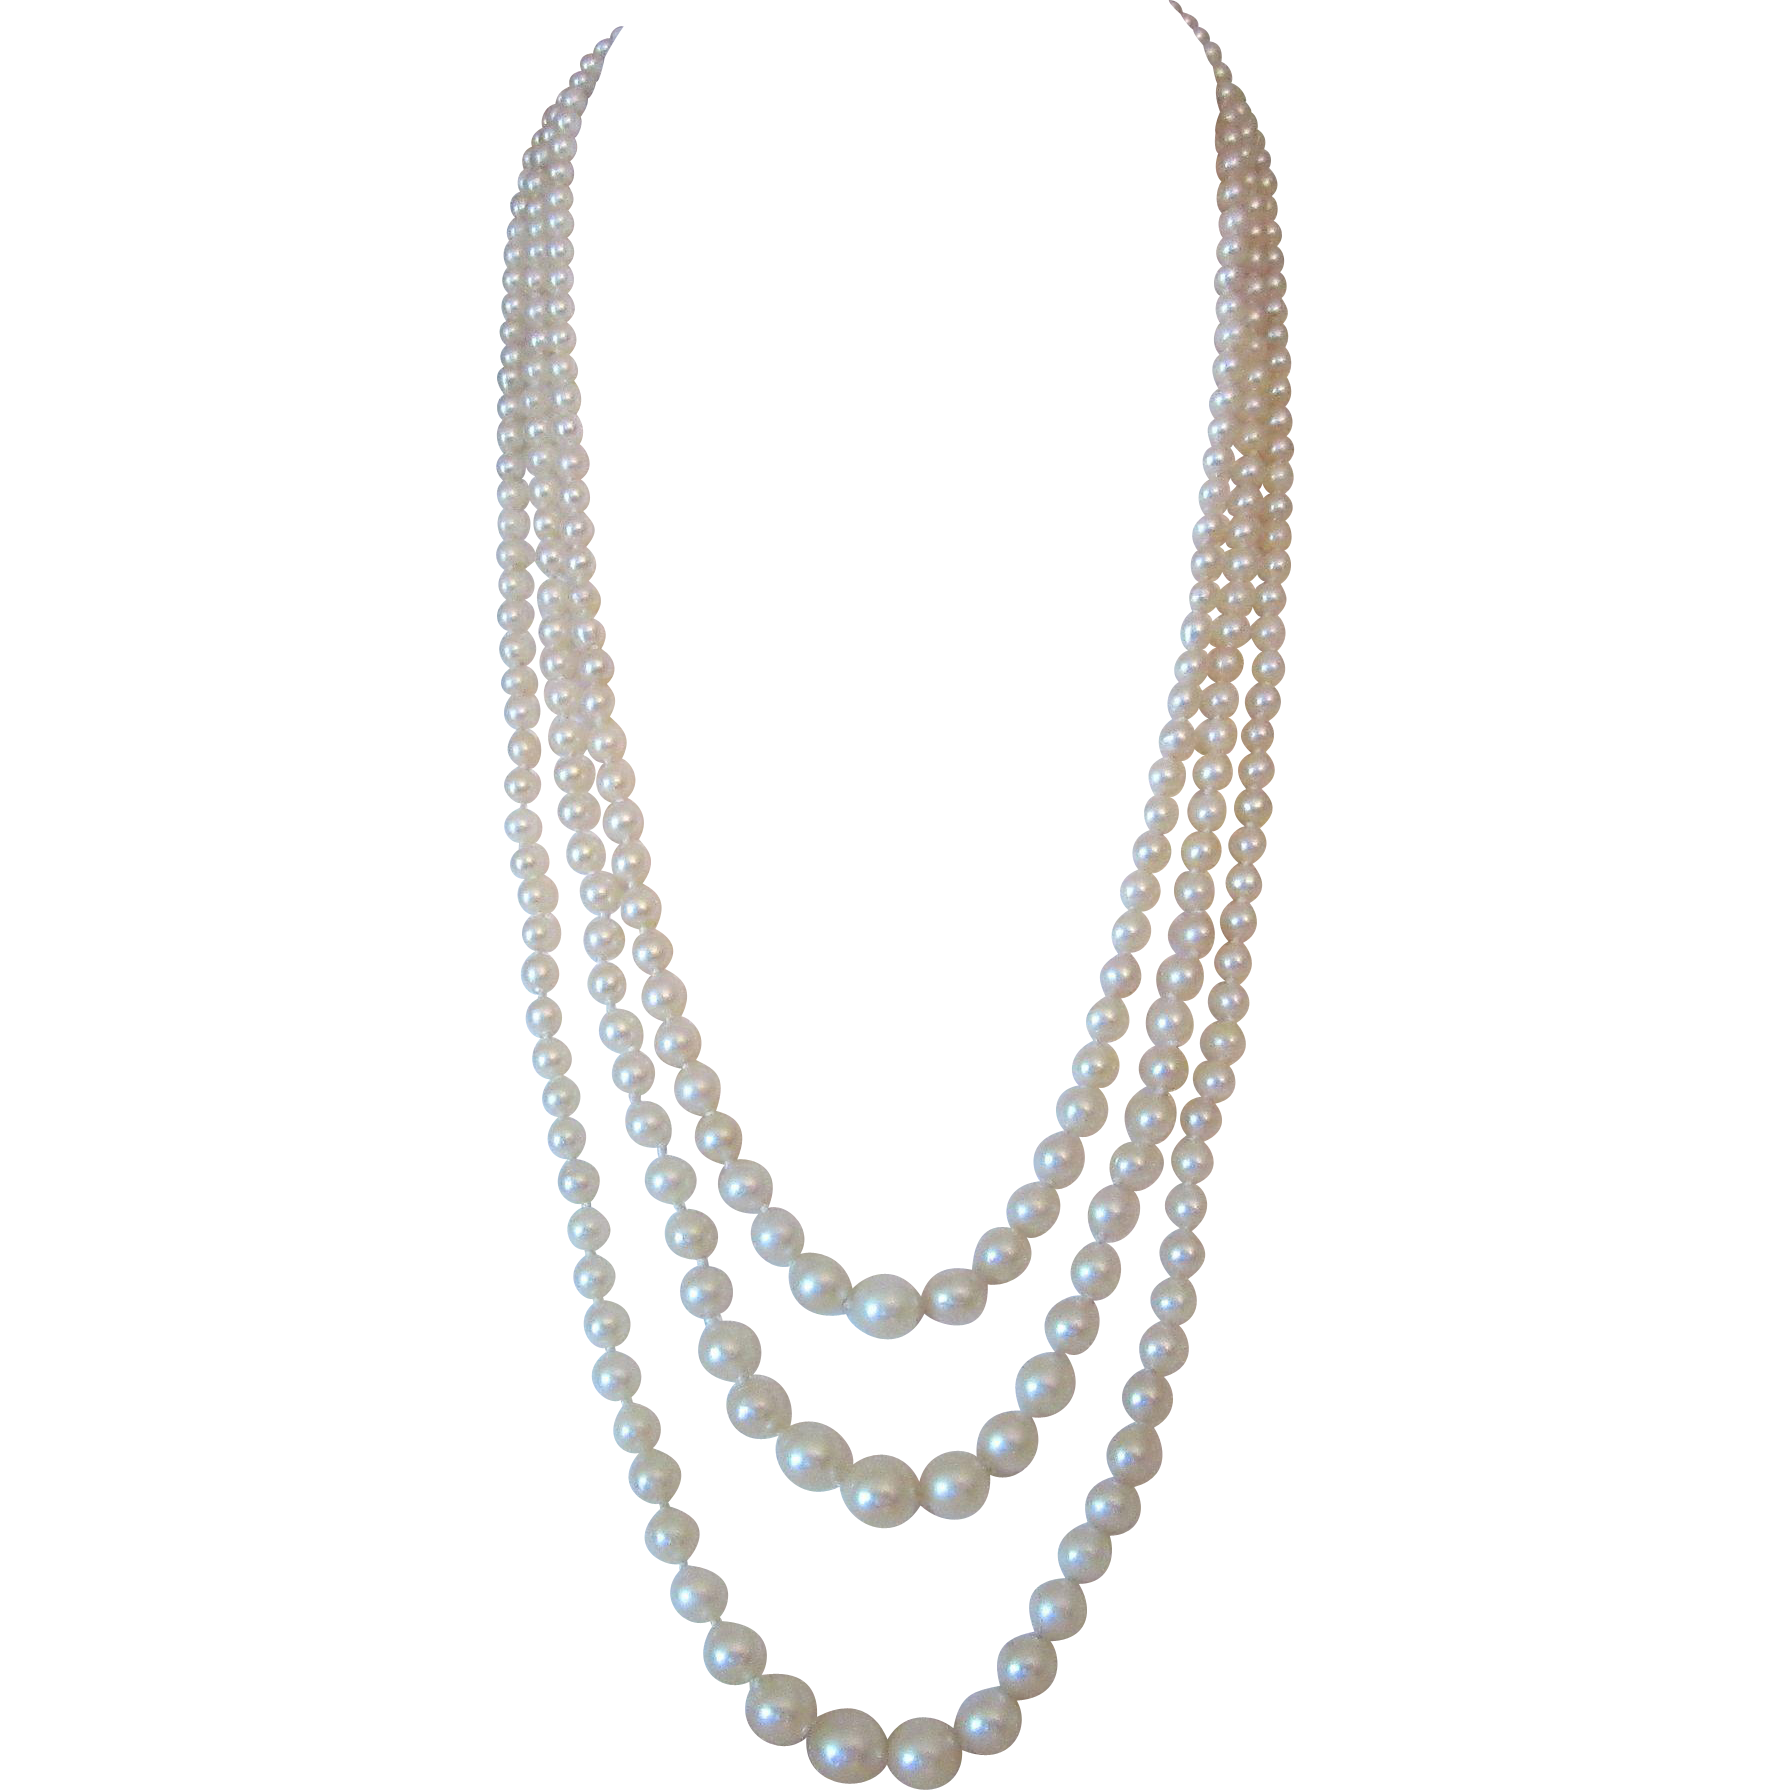 deco cultured pearl necklace from rubylane sold on ruby